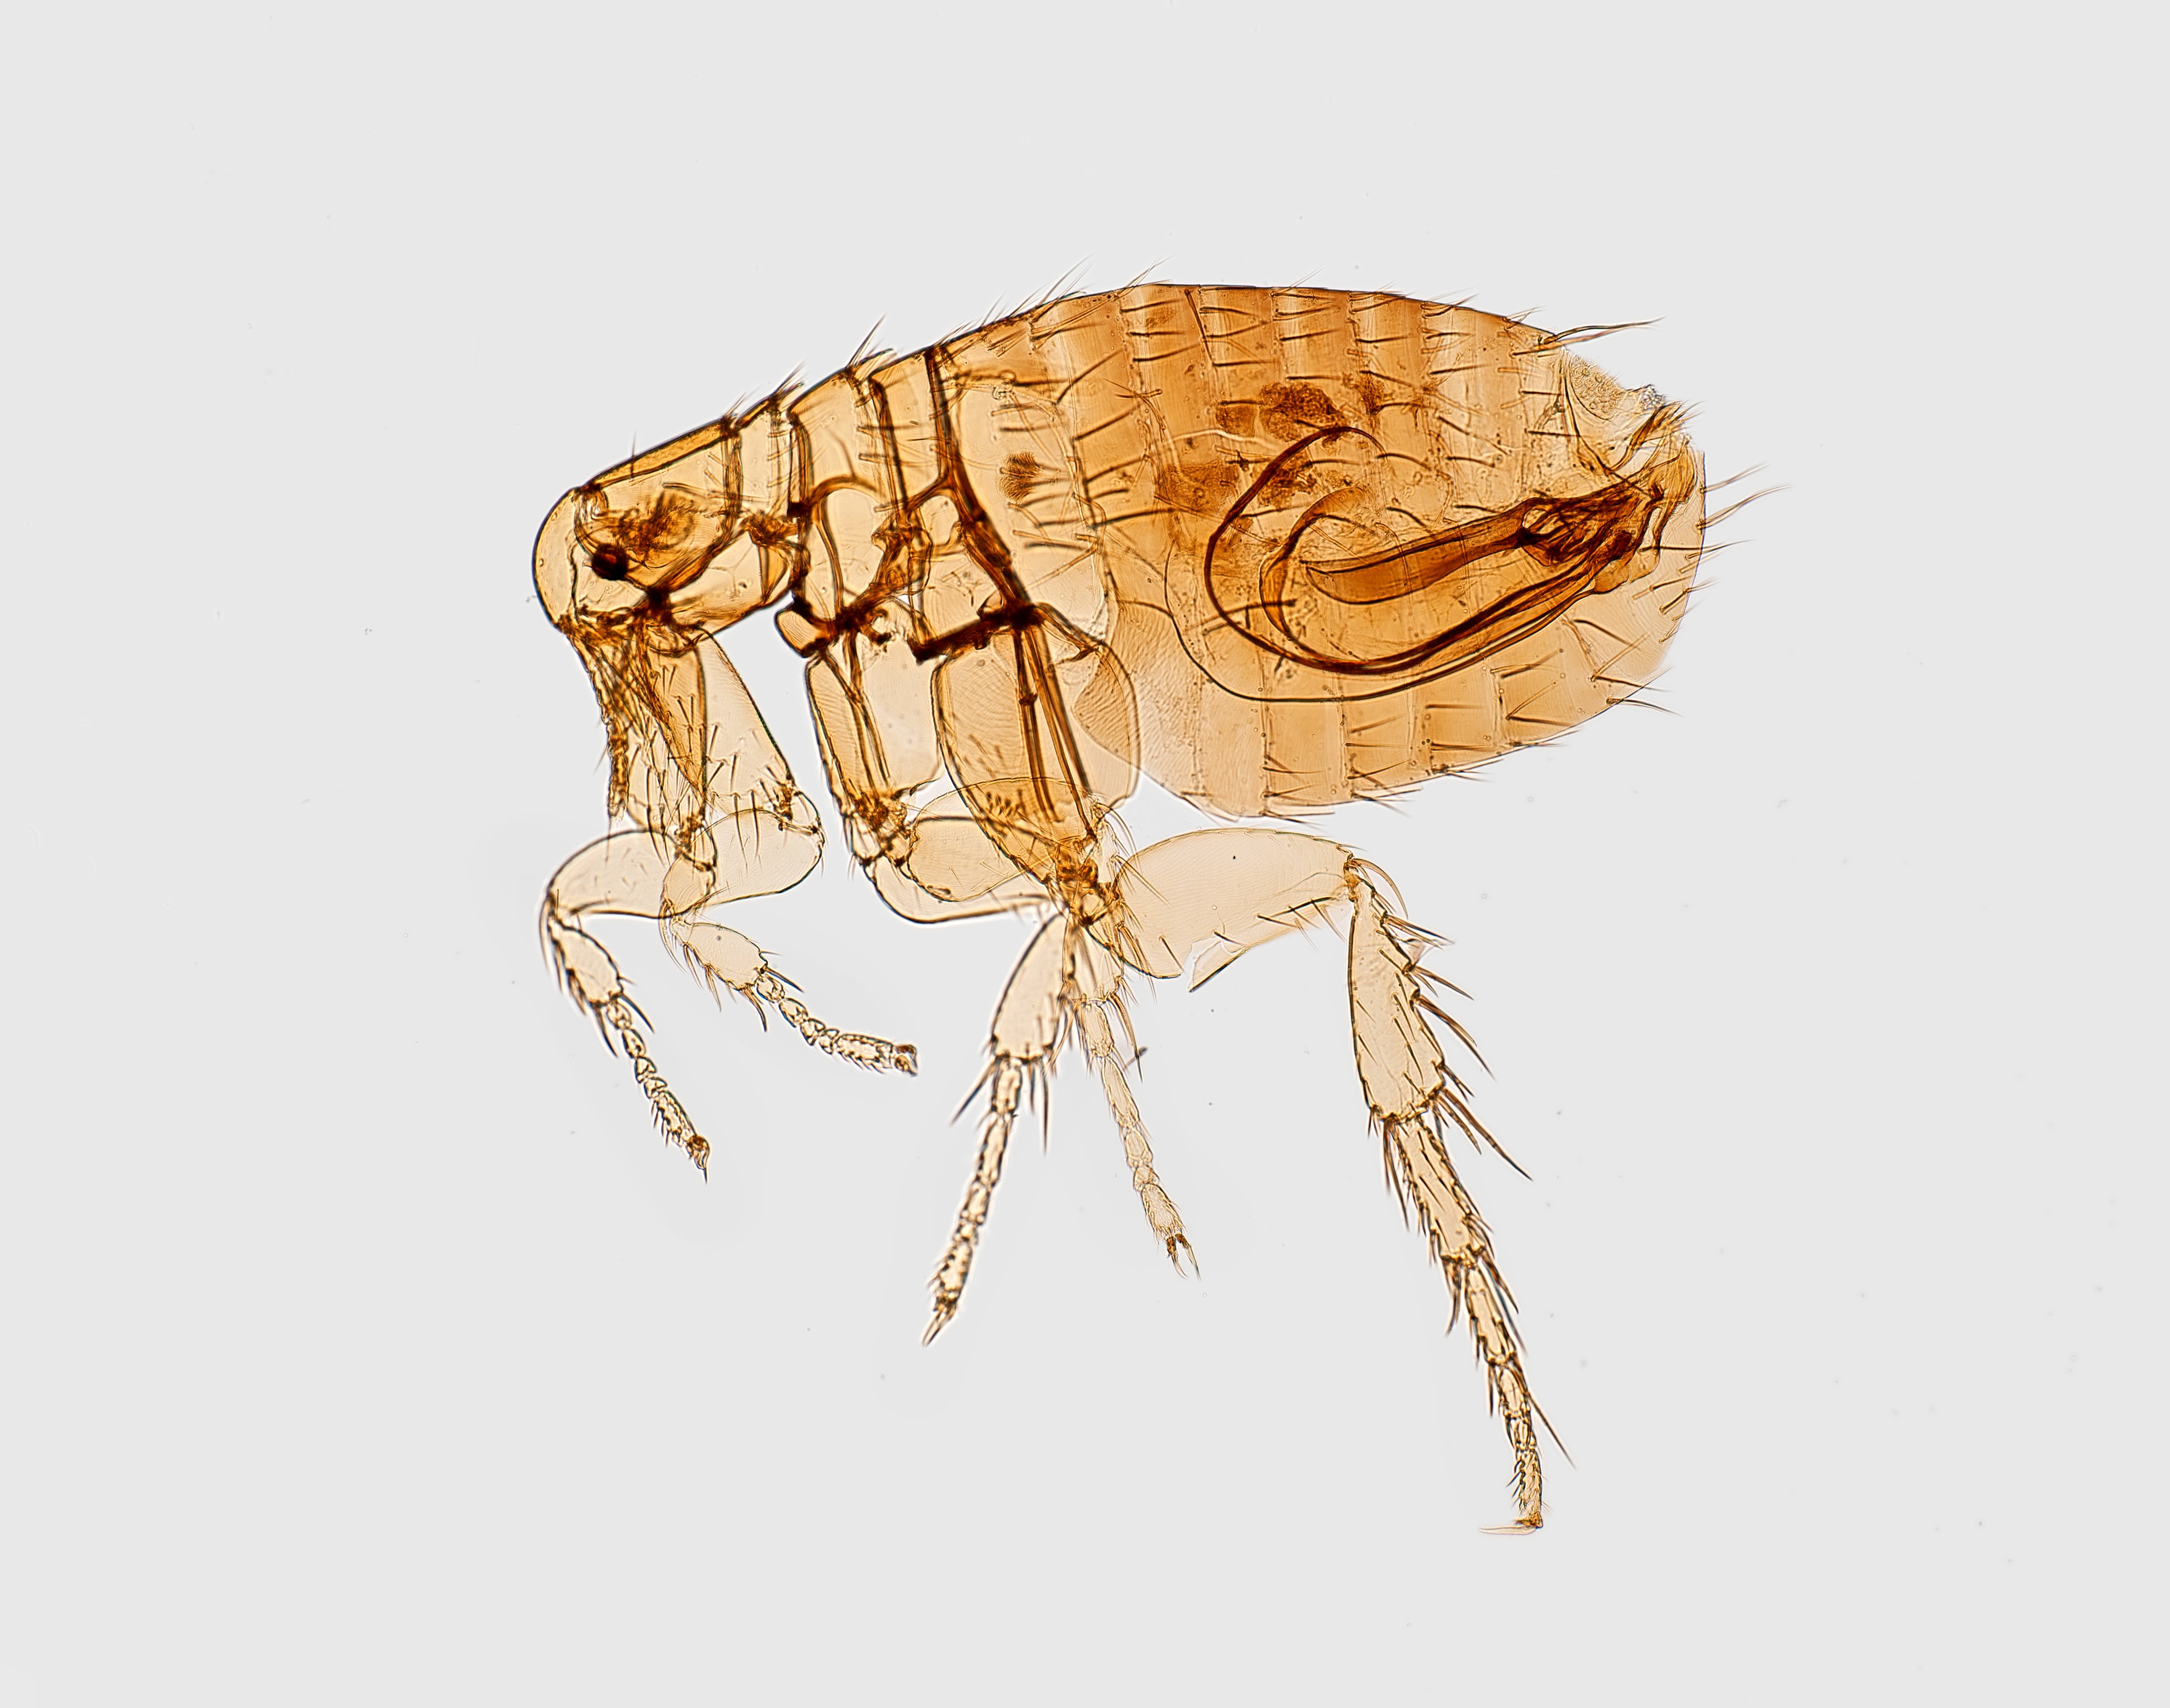 To understand how to get rid of flea eggs effectively, you need to know the different stages of their life cycle